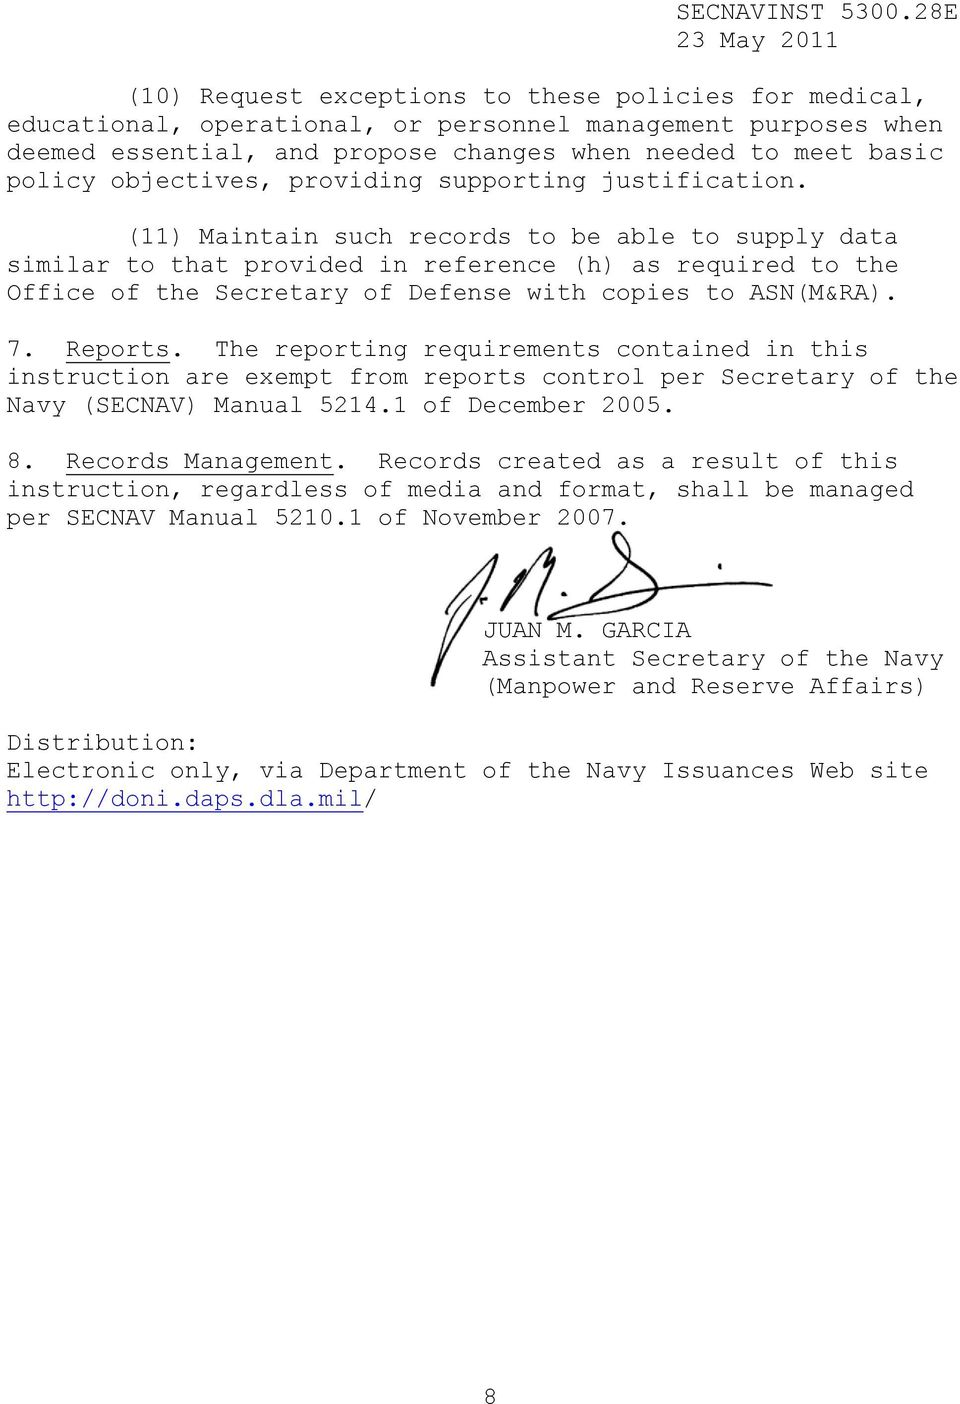 (11) Maintain such records to be able to supply data similar to that provided in reference (h) as required to the Office of the Secretary of Defense with copies to ASN(M&RA). 7. Reports.